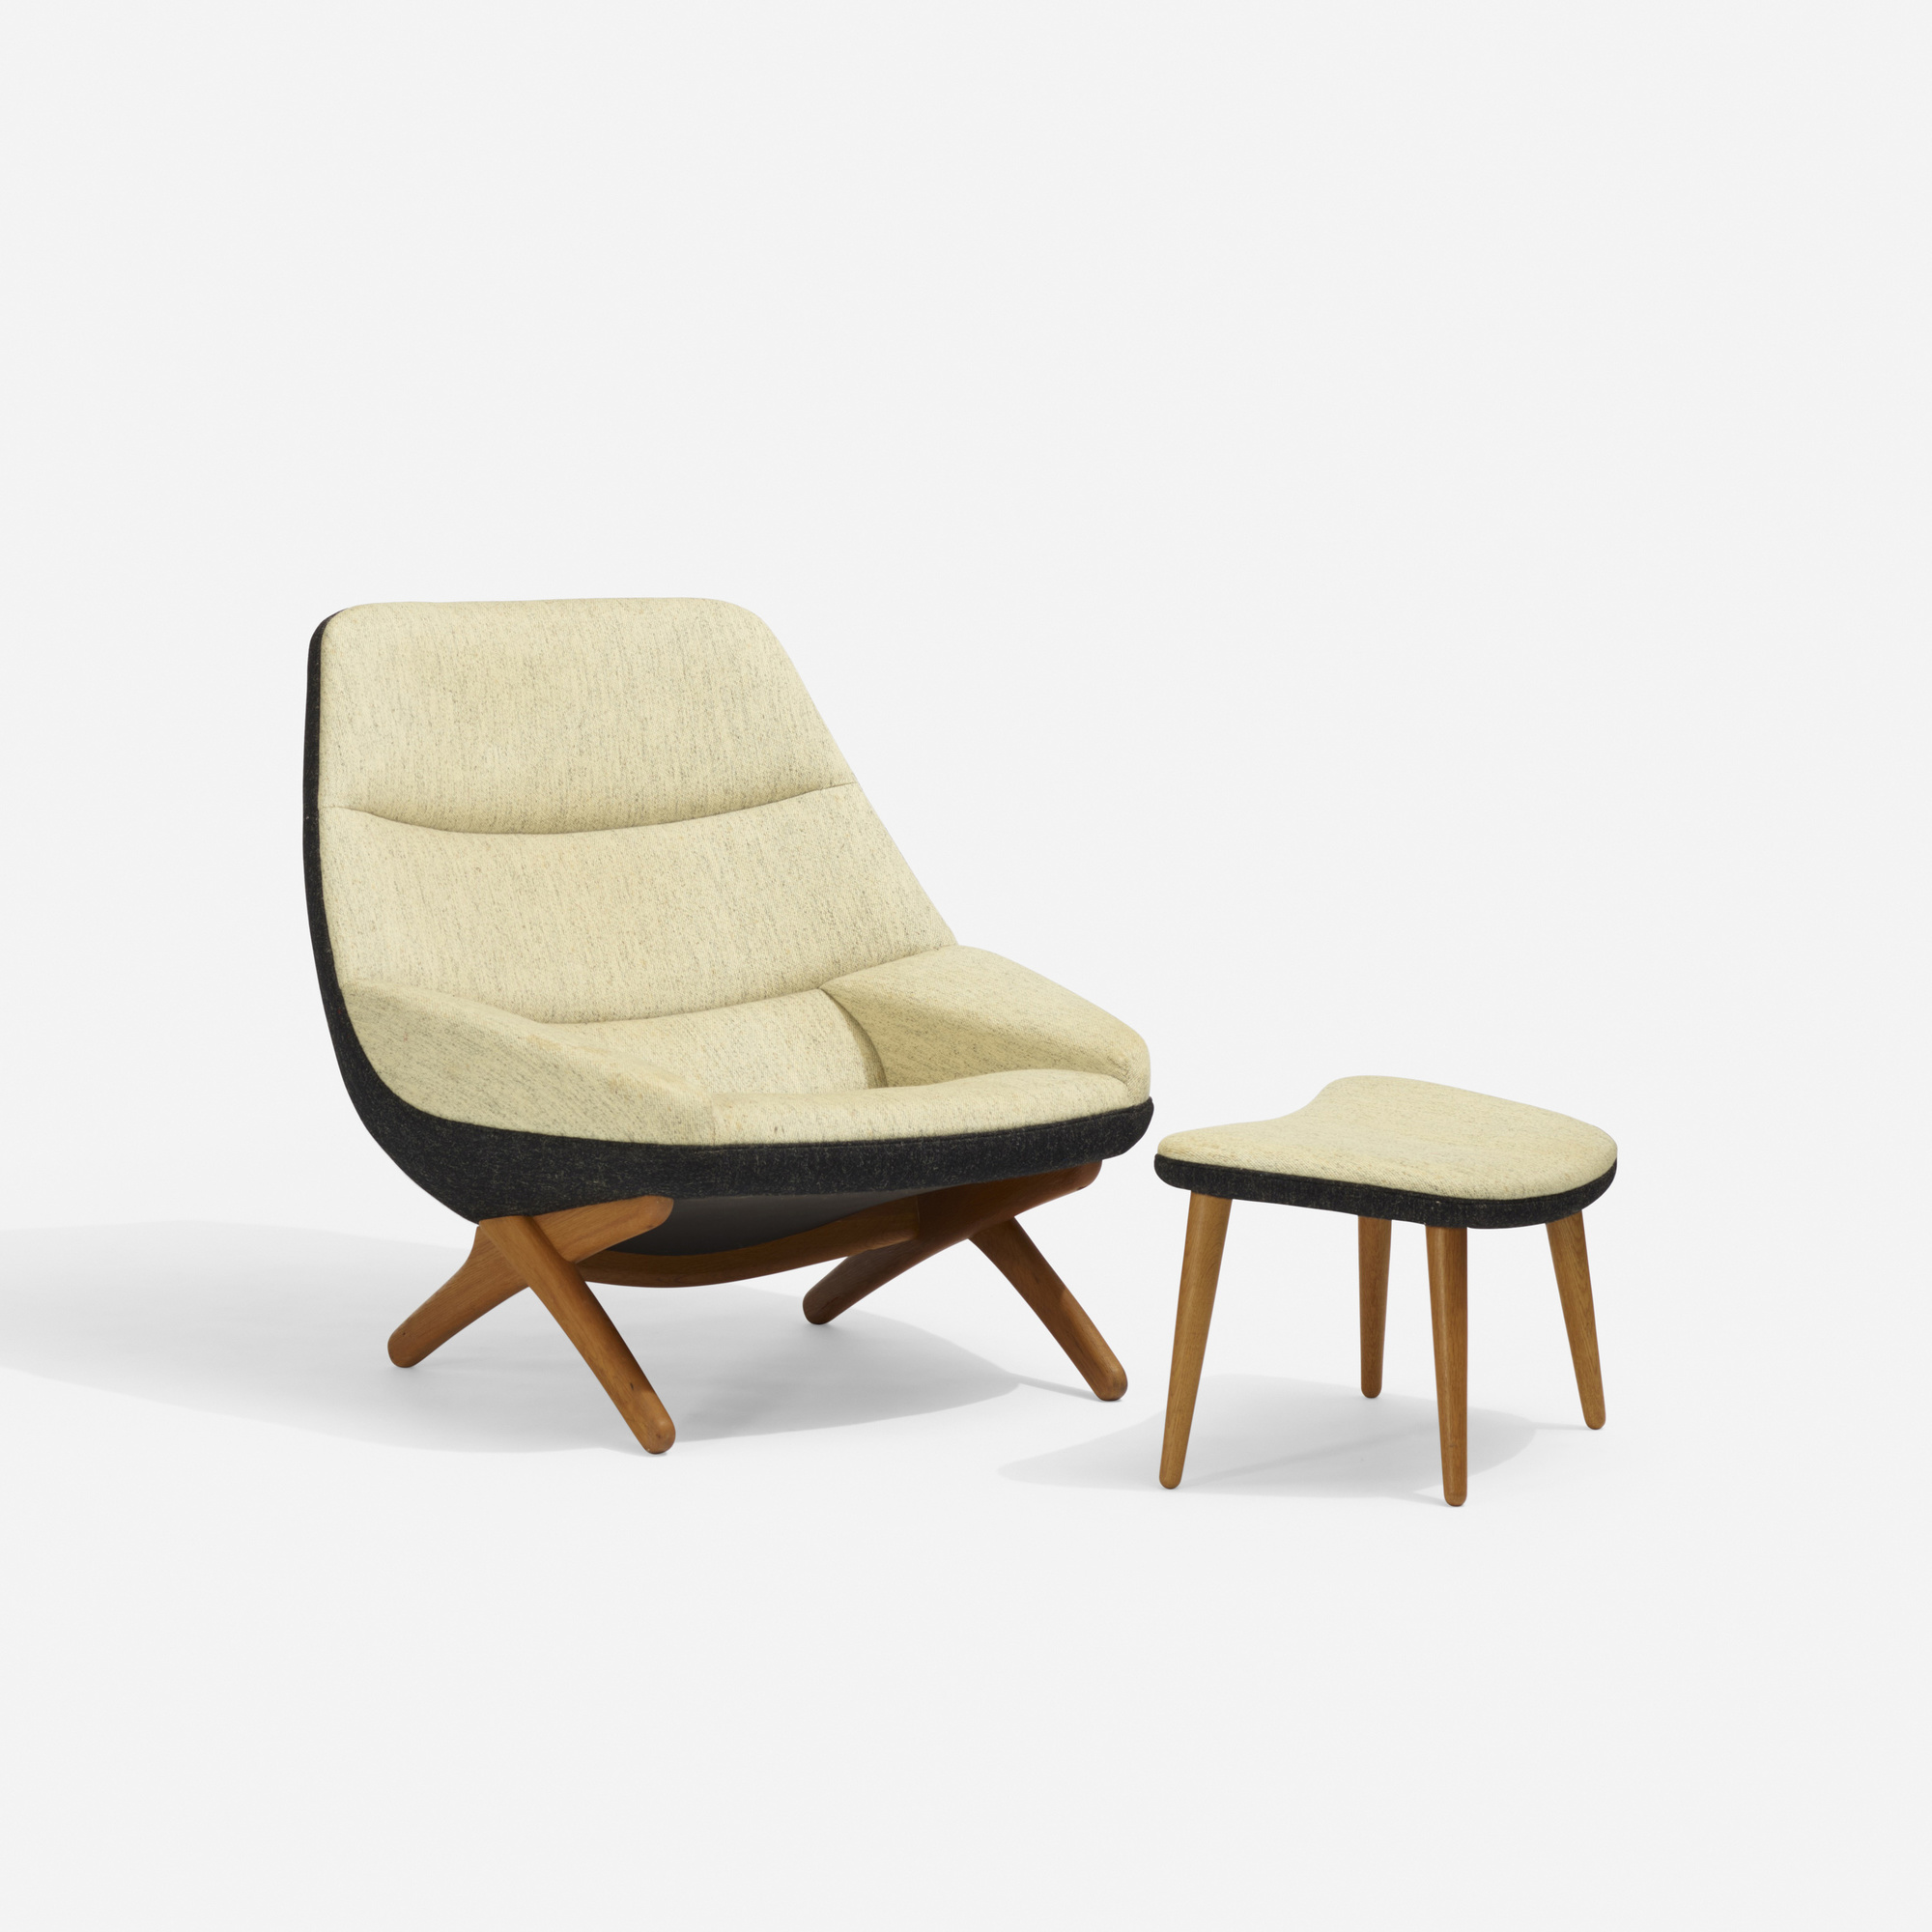 279: Illum Wikkelsø / lounge chair, model 91 and ottoman (2 of 3)